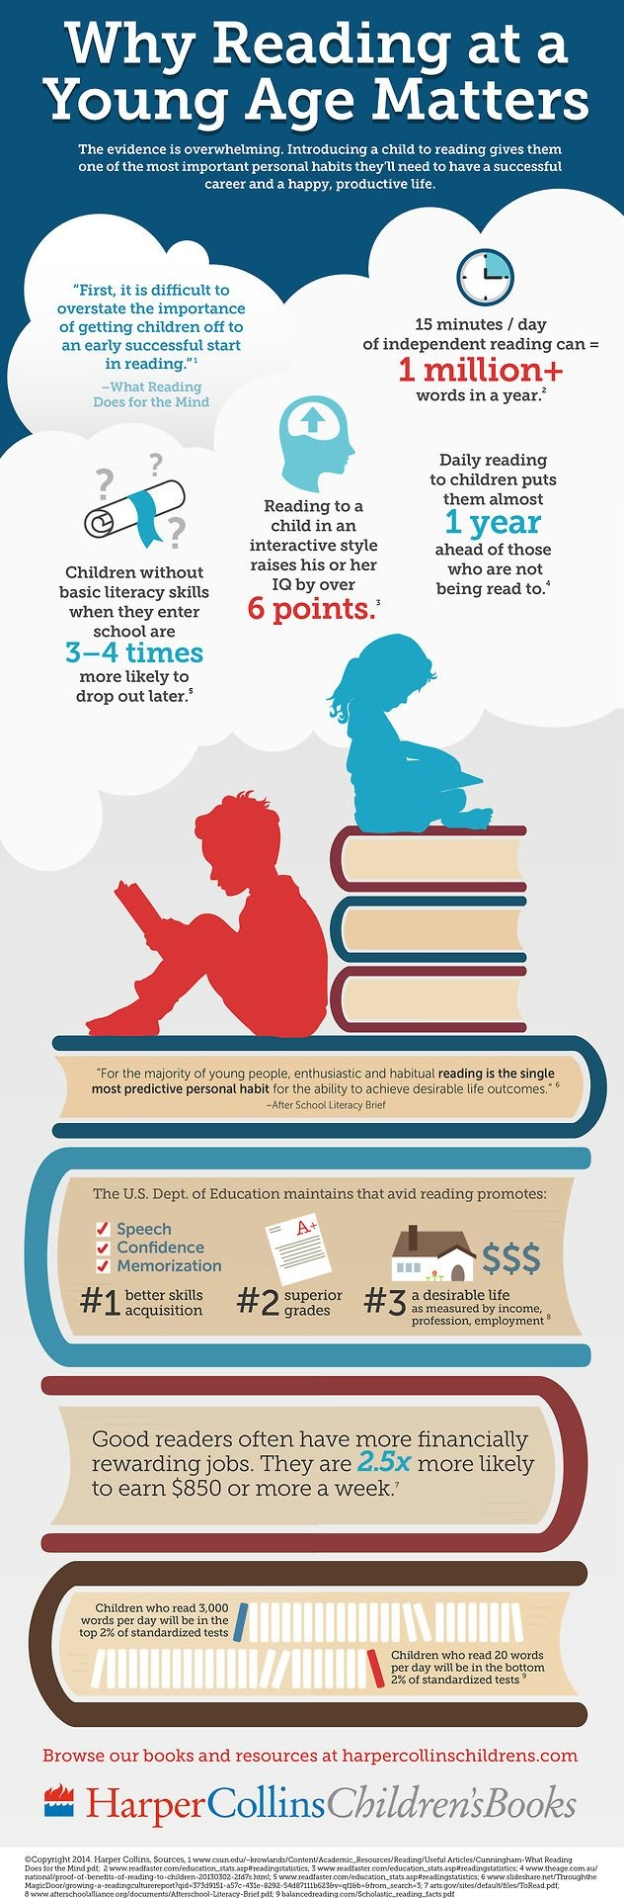 9 Reasons Why Reading at a Young Age Matters